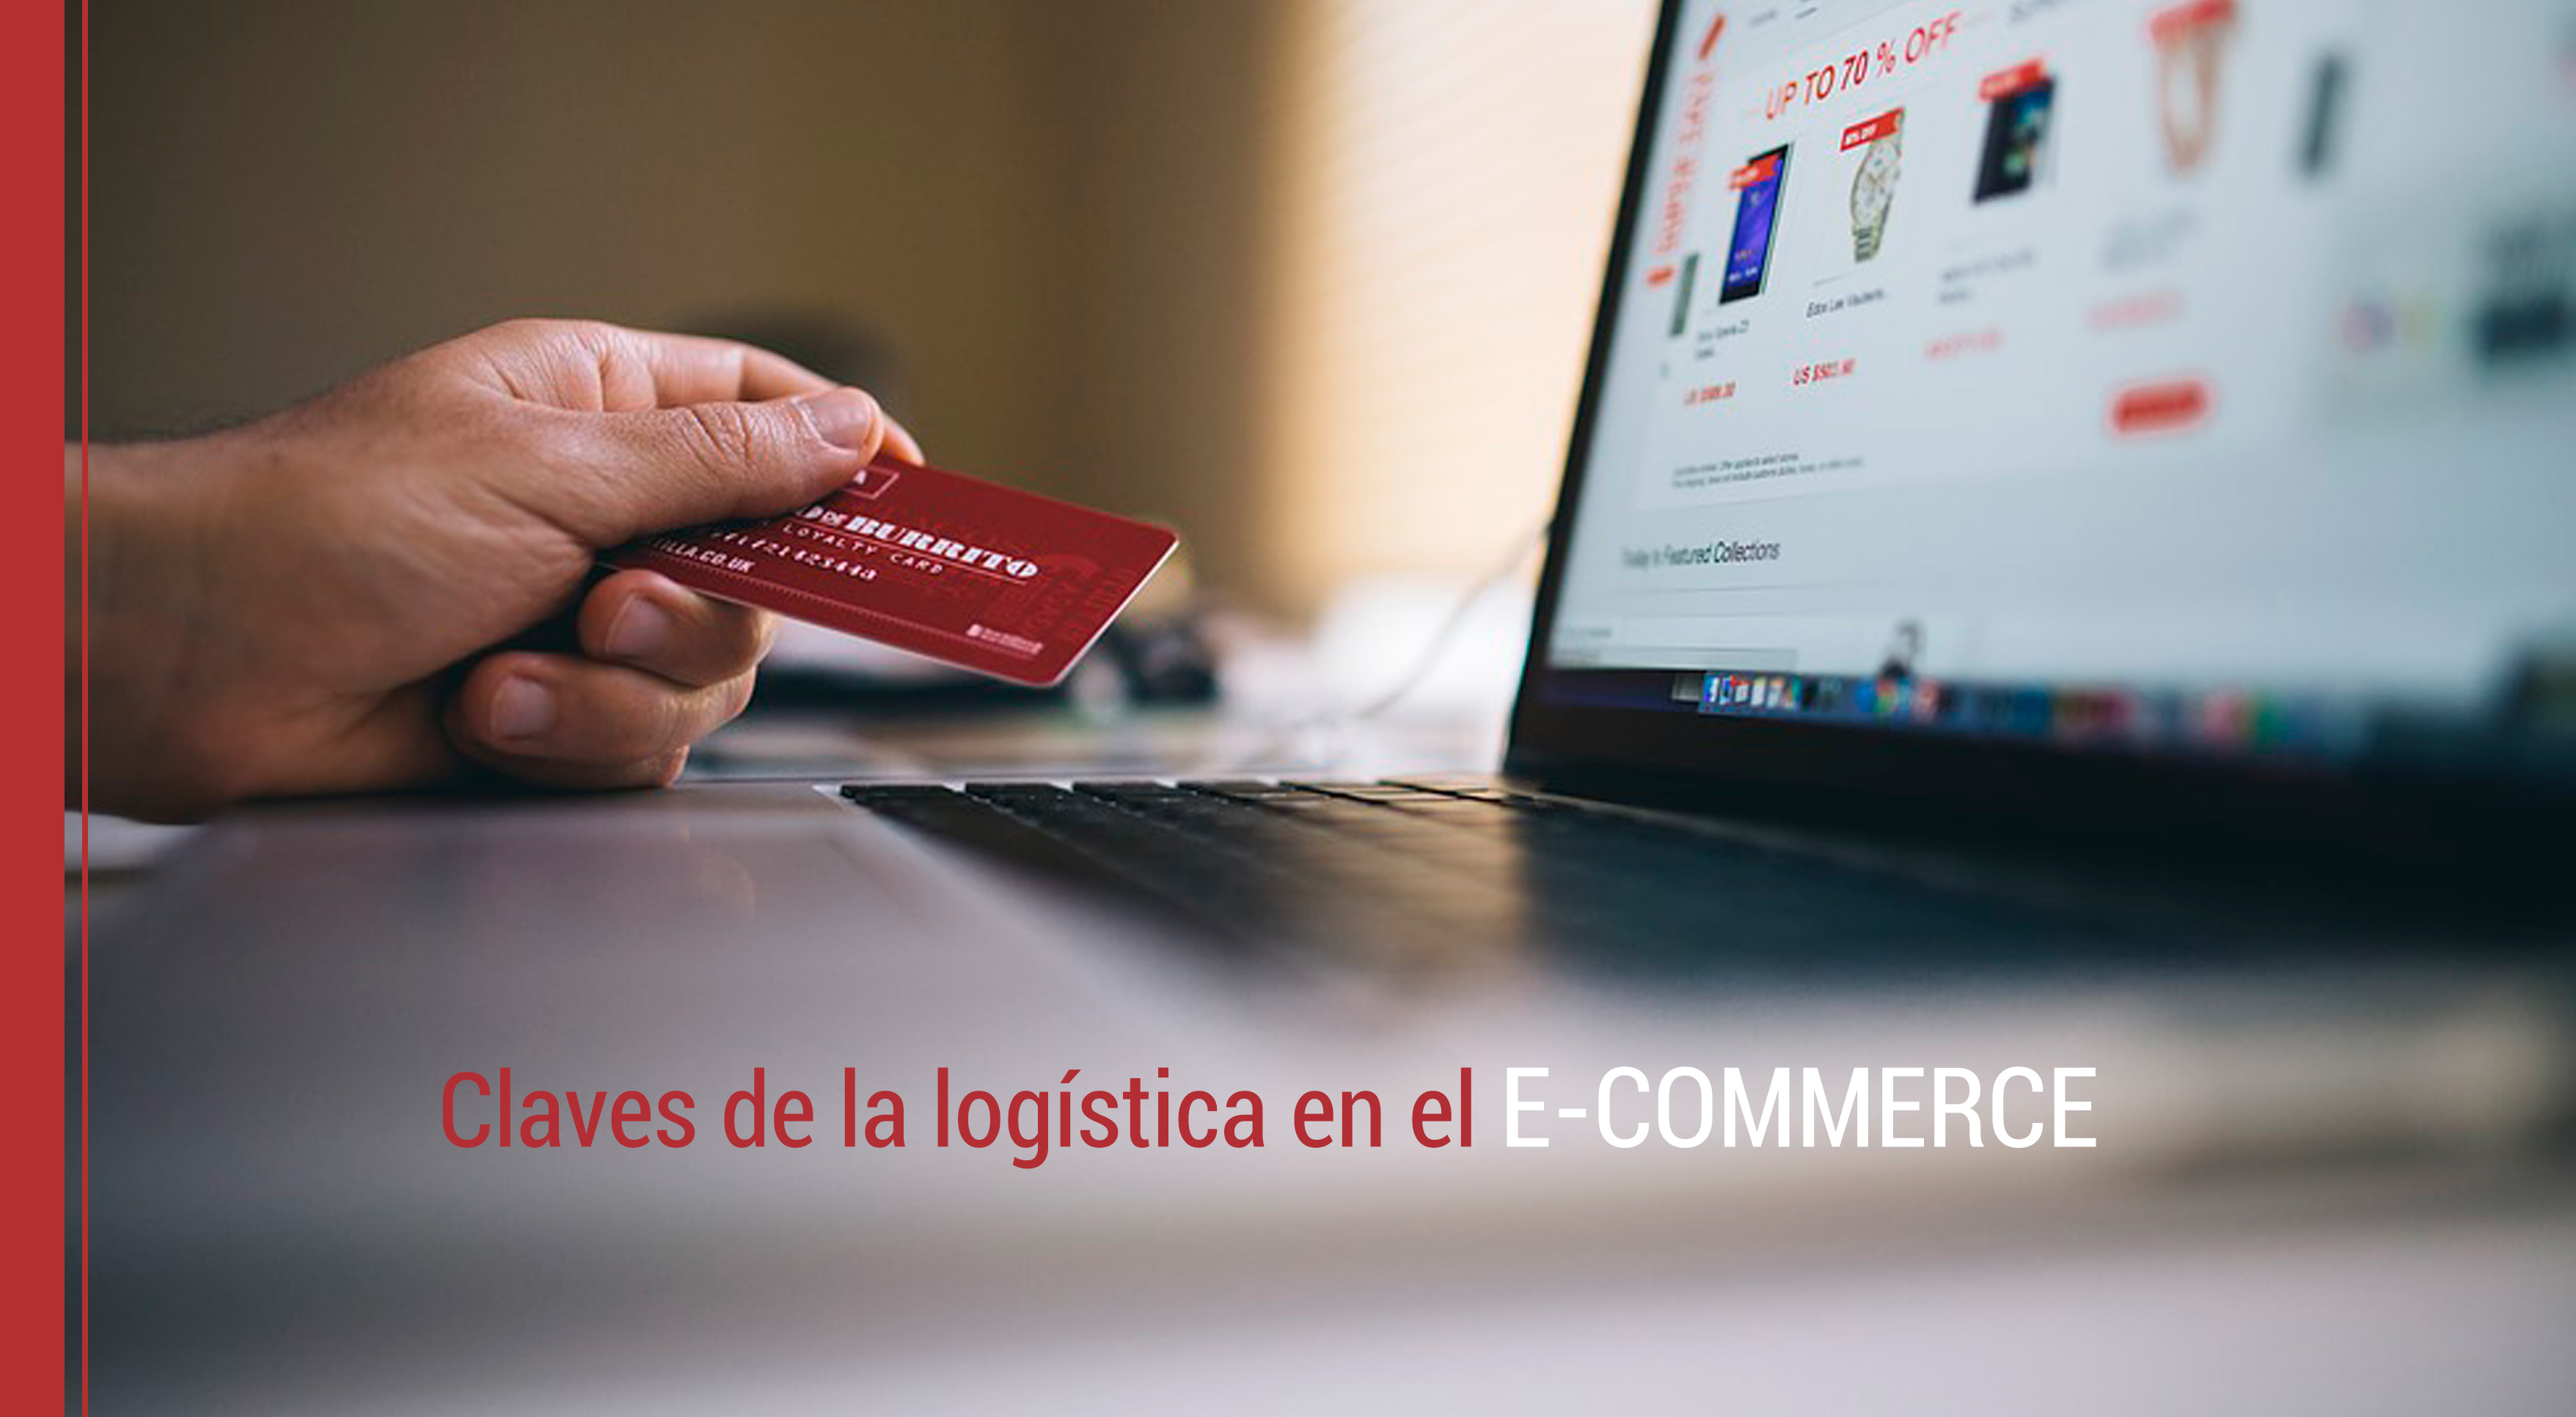 claves de la logistica en el ecommerce